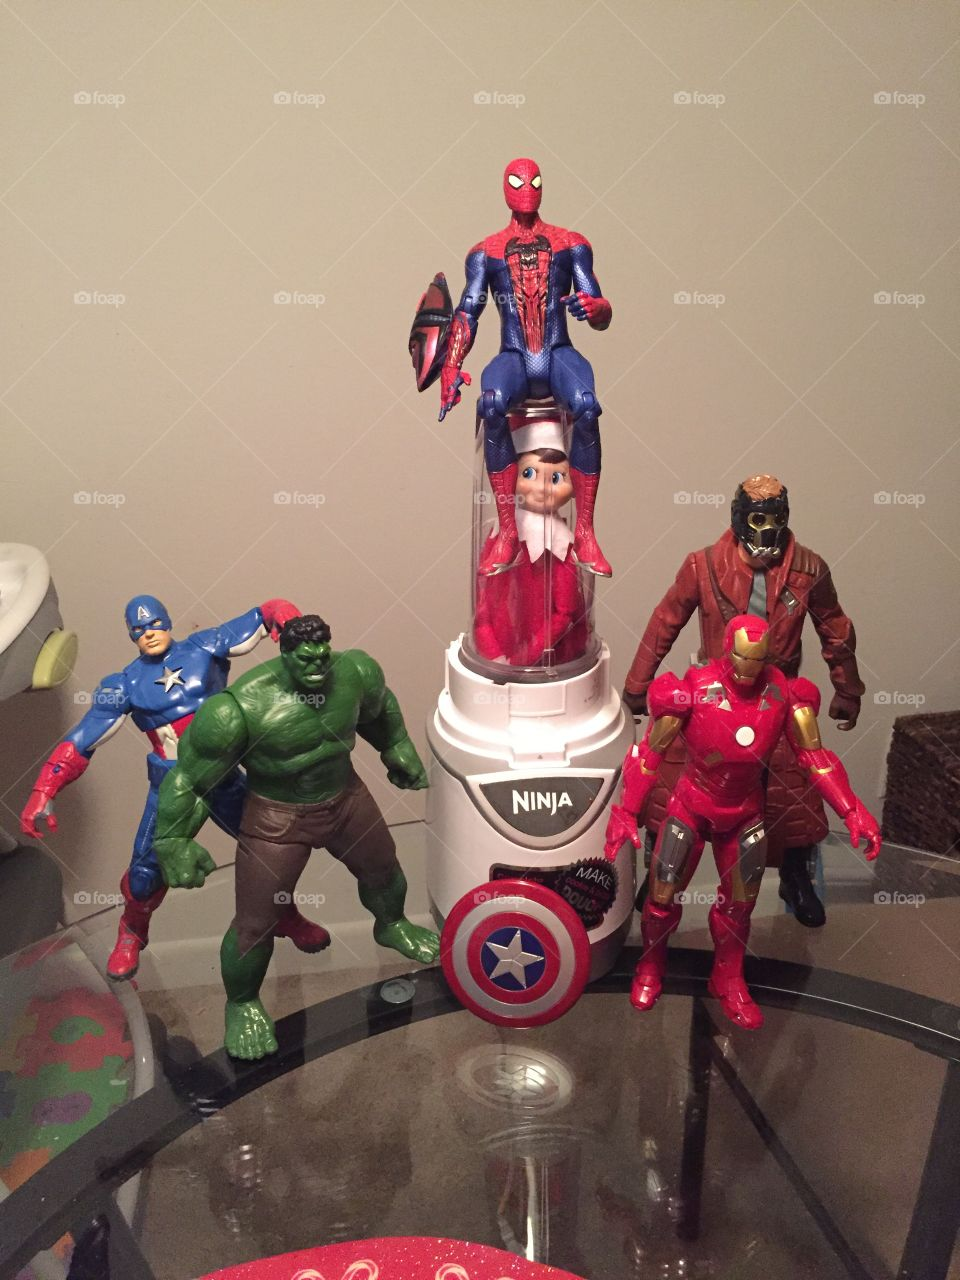 And the Avengers strike again saving the world from this mutant elf on the shelf!